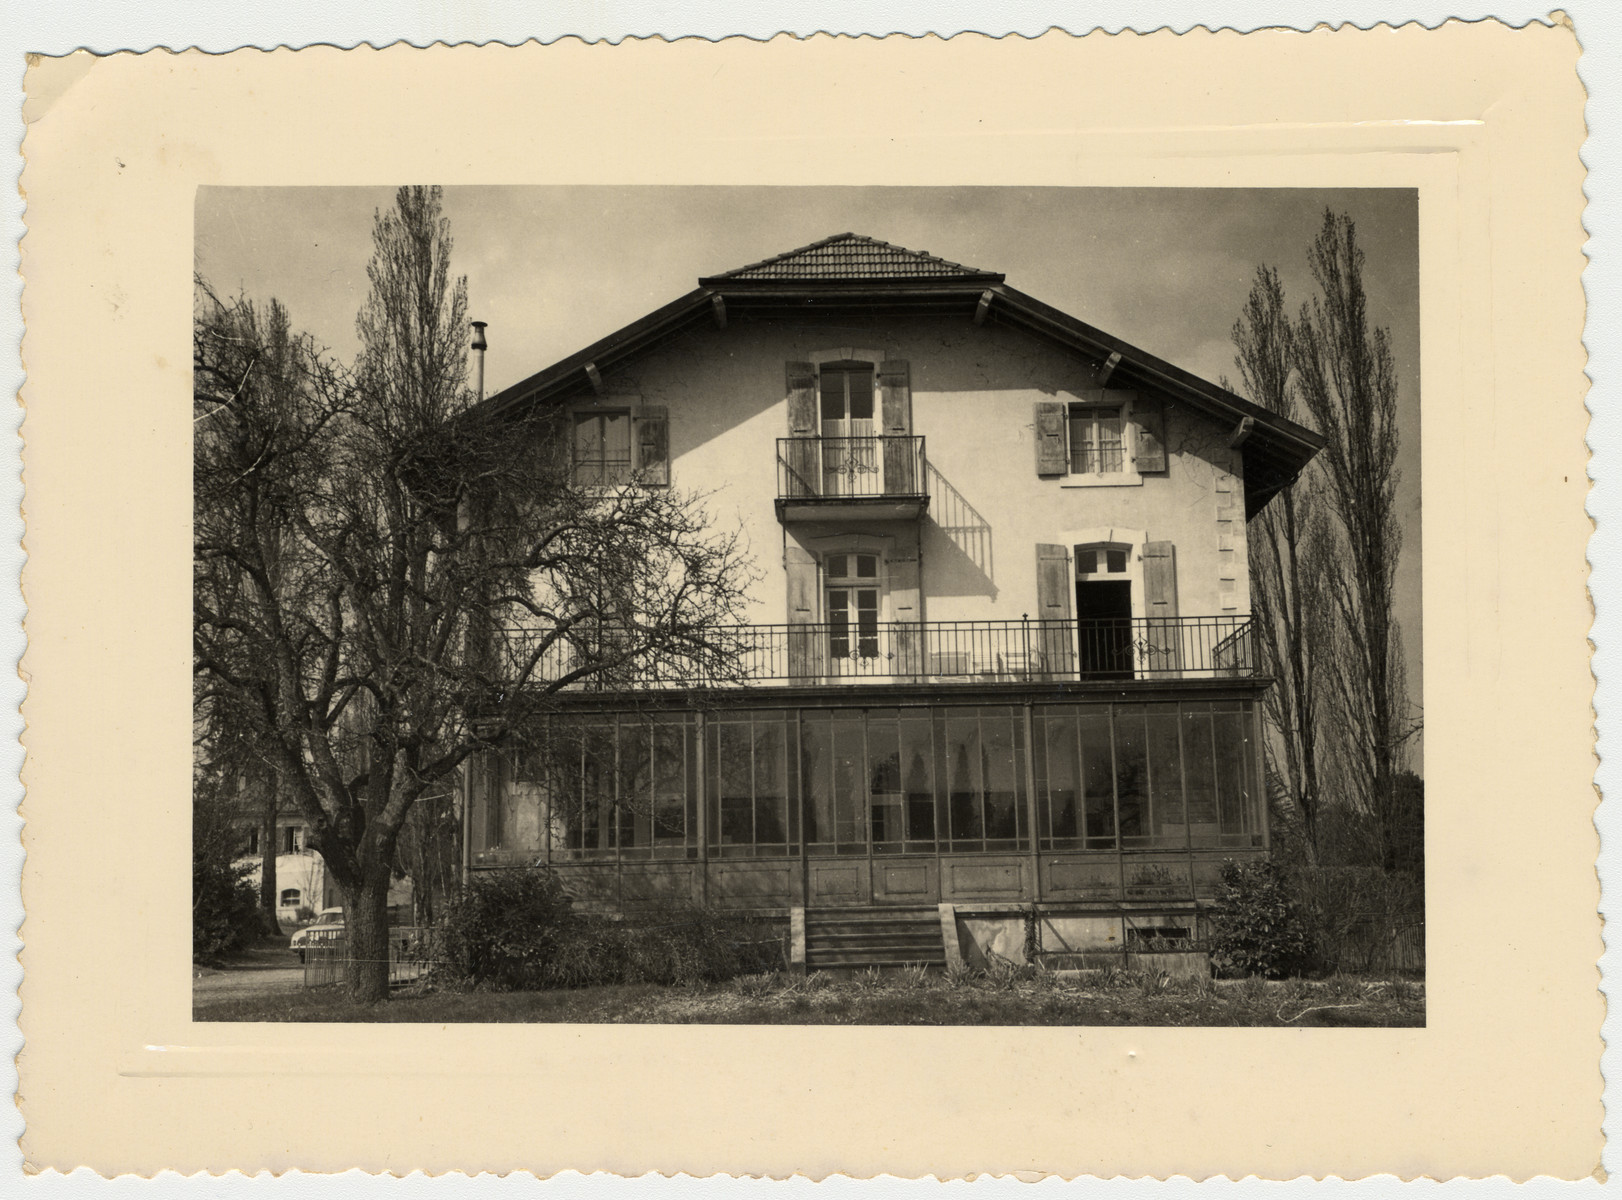 Exterior view of the Versoix children's home.